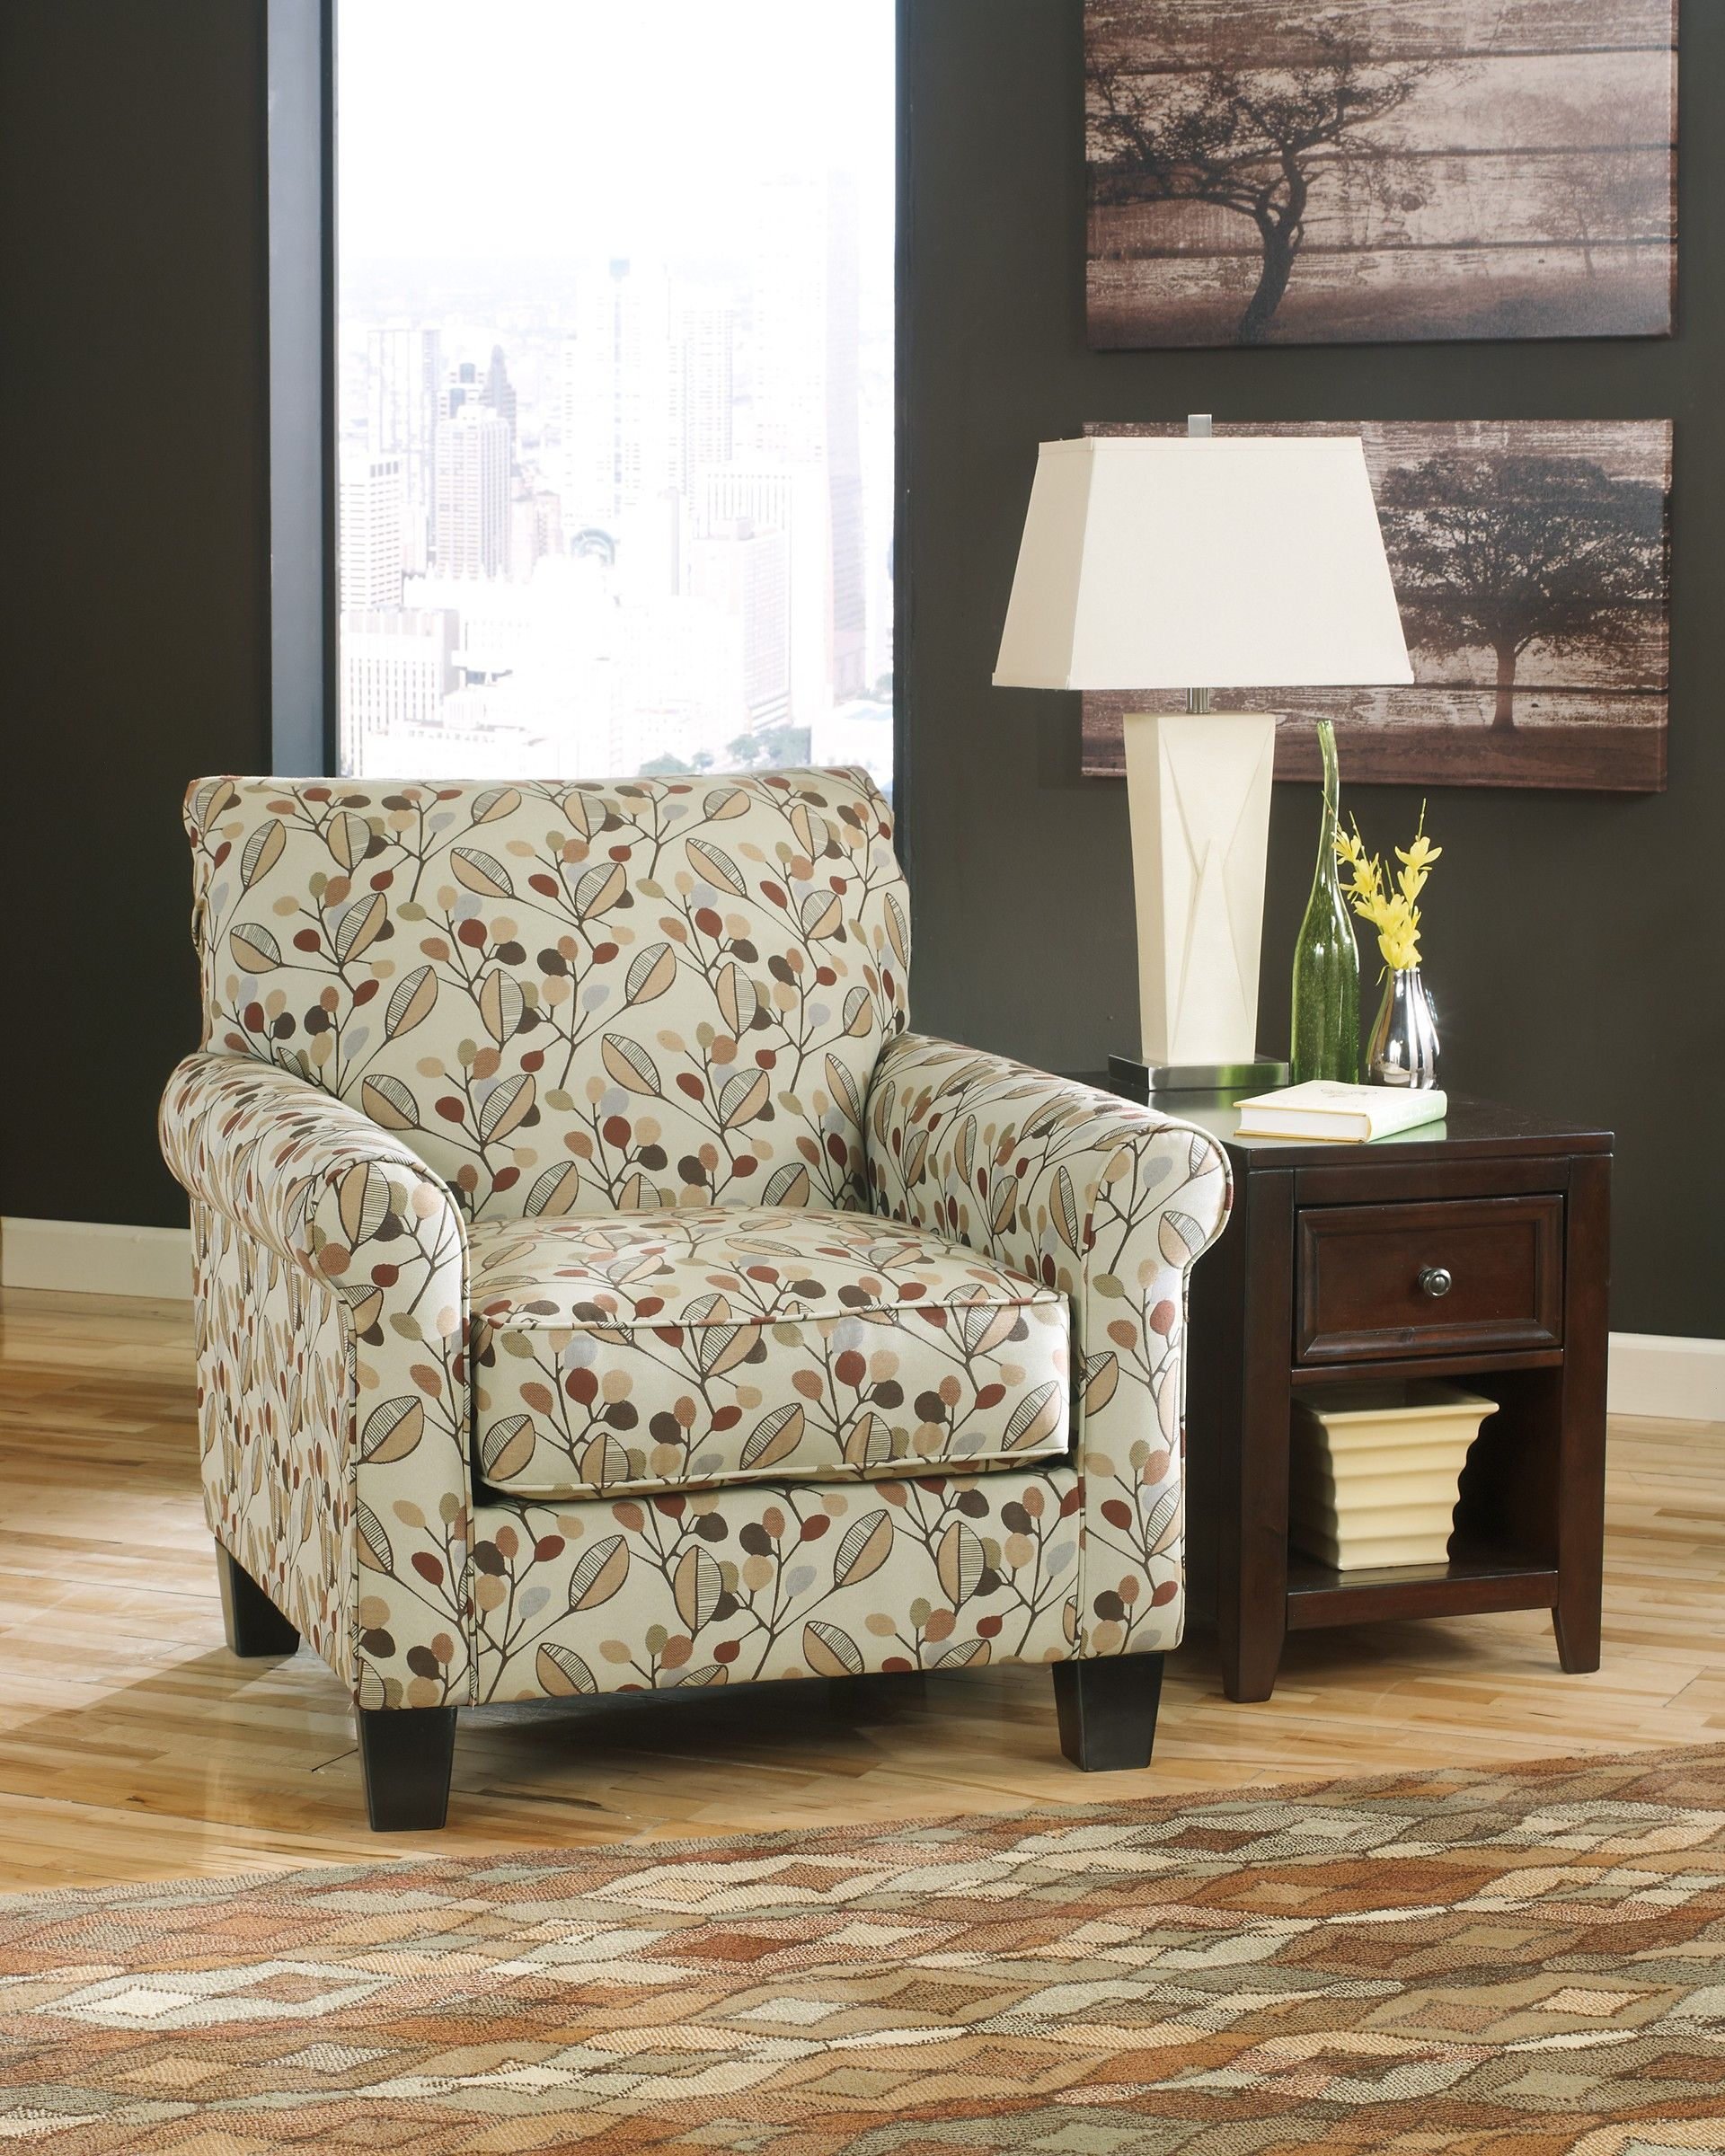 Gusti Dusk Living Room Set Signature Design: Ashley Danely 3550021 Benchcraft Accent Chair